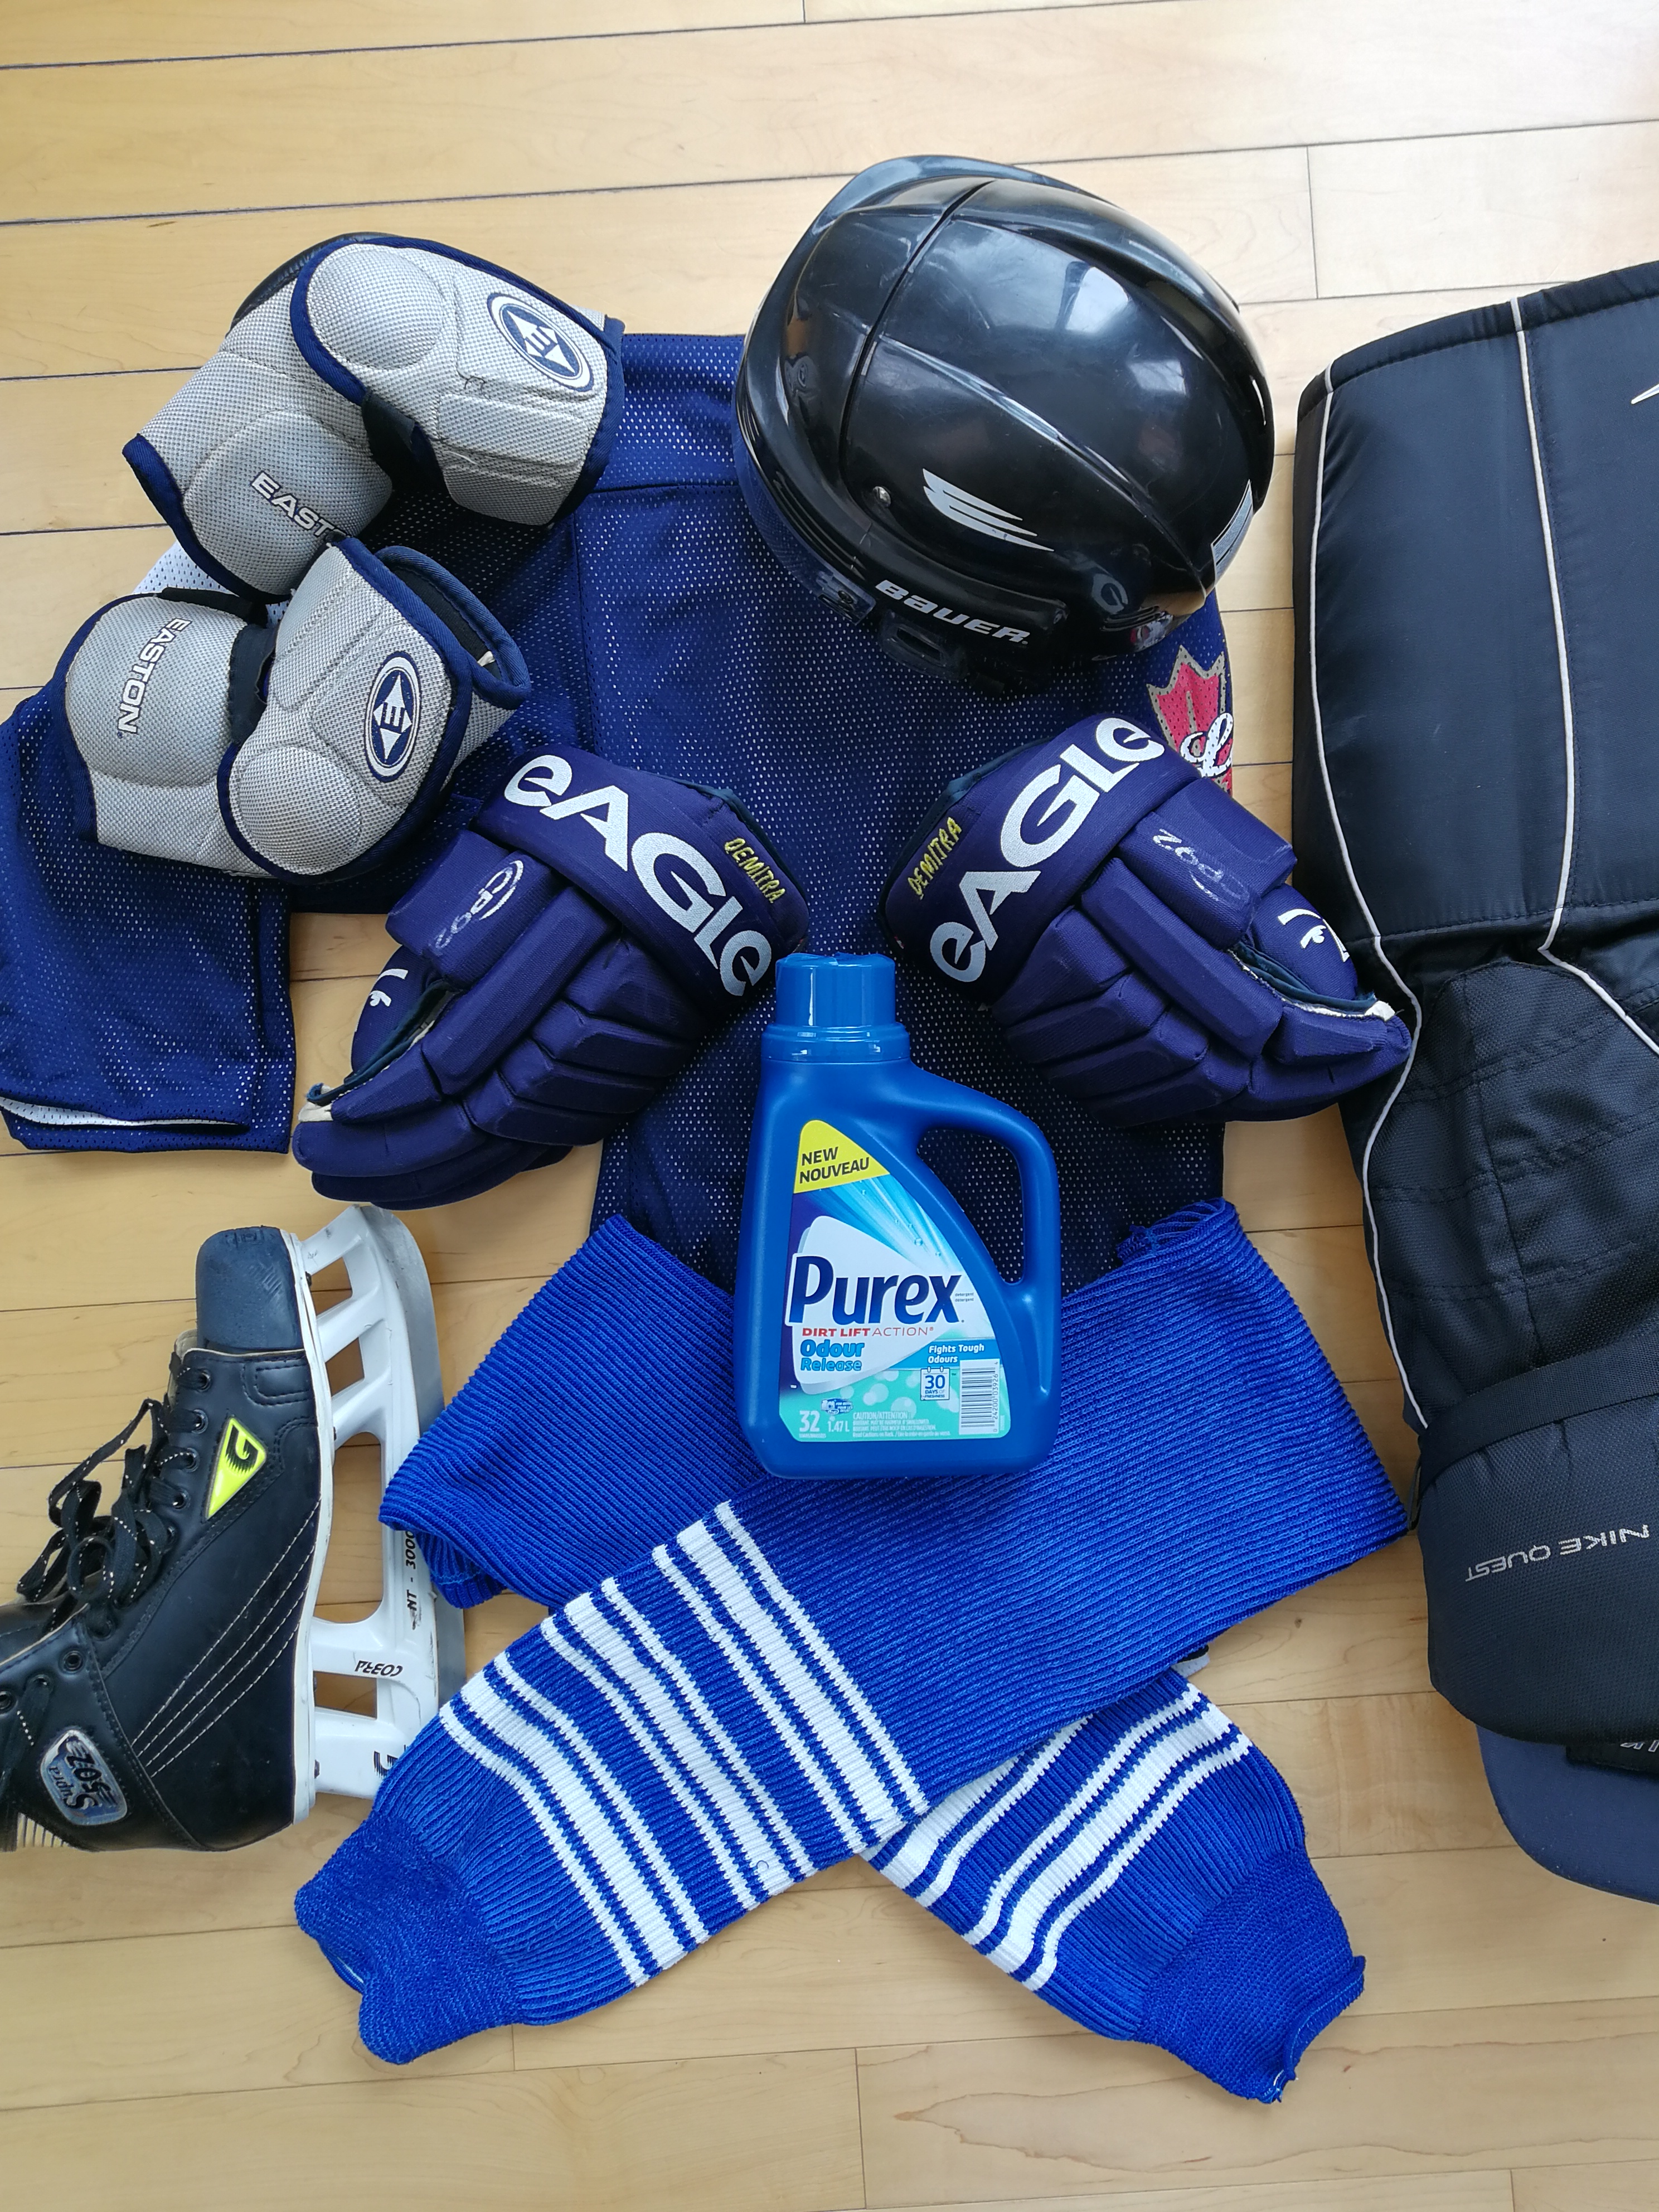 3ad3e8223 Do you wash the hockey equipment that lives in your house  Here are some  stats that will be of interest to you. A recent Purex survey